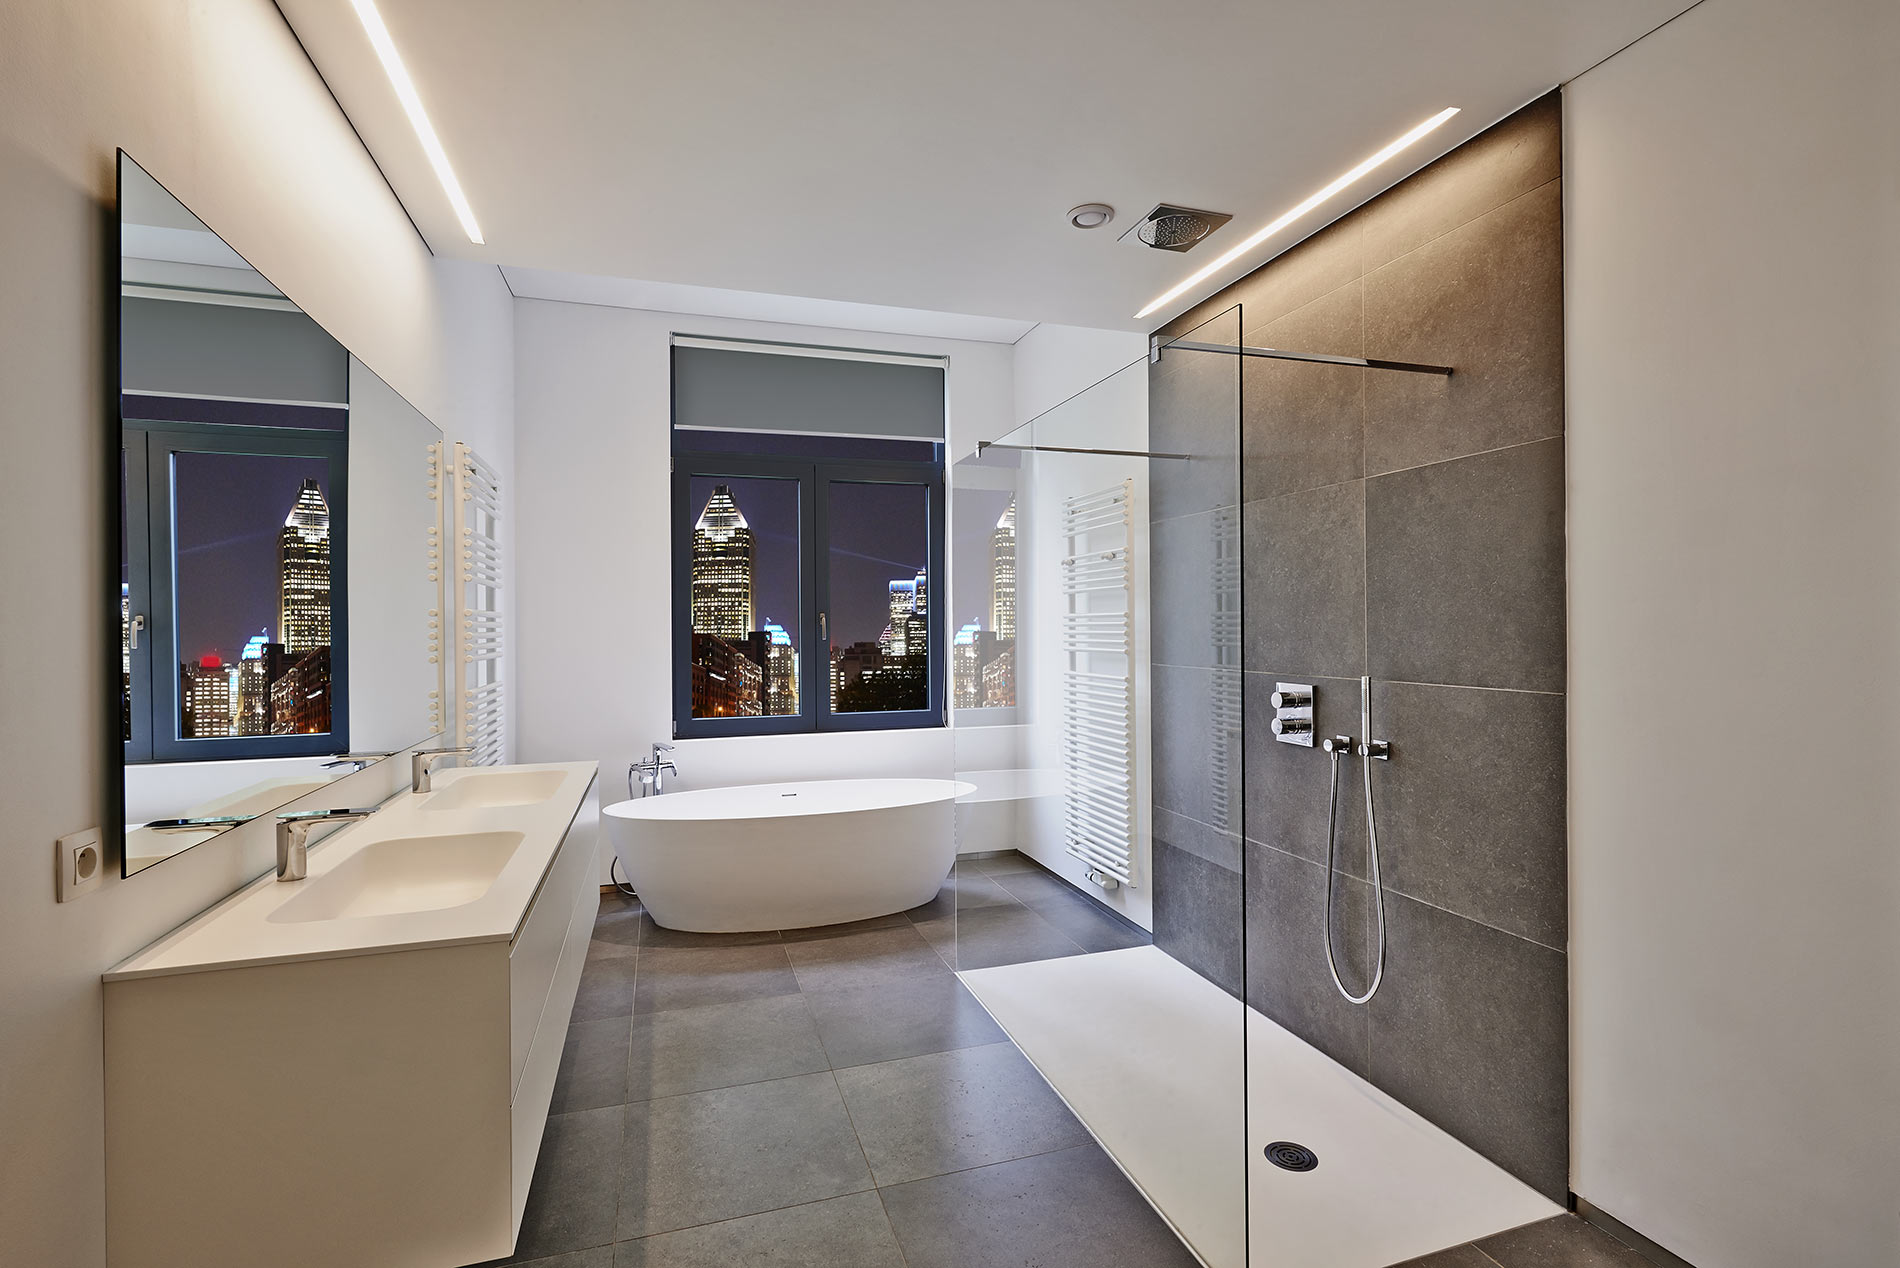 The Best Helpful Decorating Tips For Your Bathroom ...